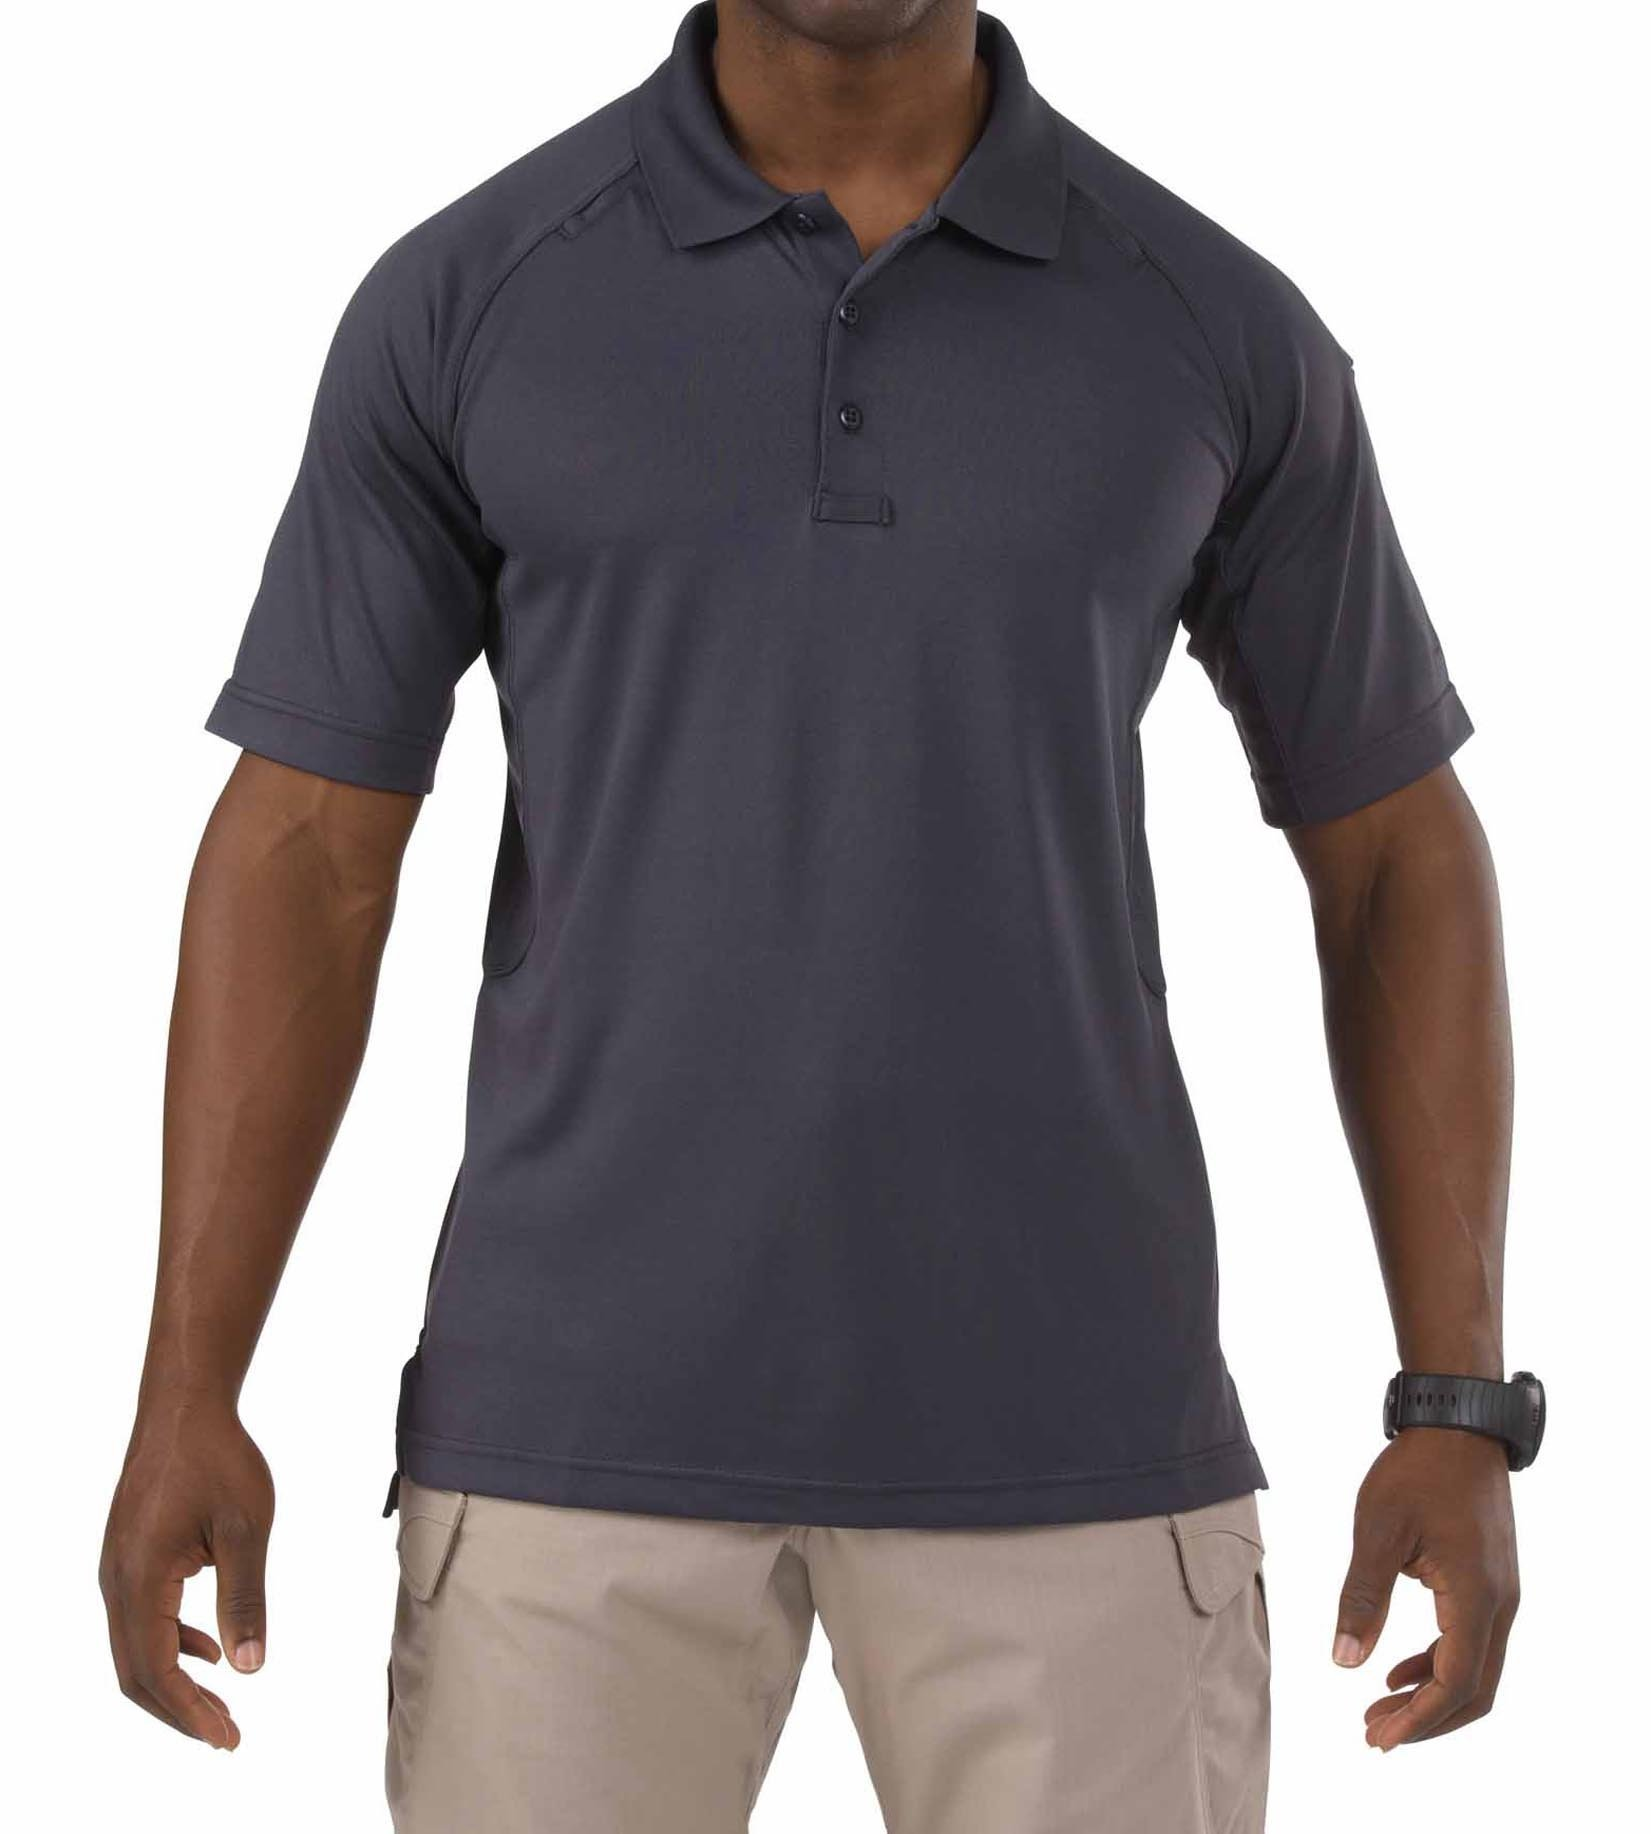 5.11 Performance Polo Short Sleeve Shirt,Charcoal,Large product image